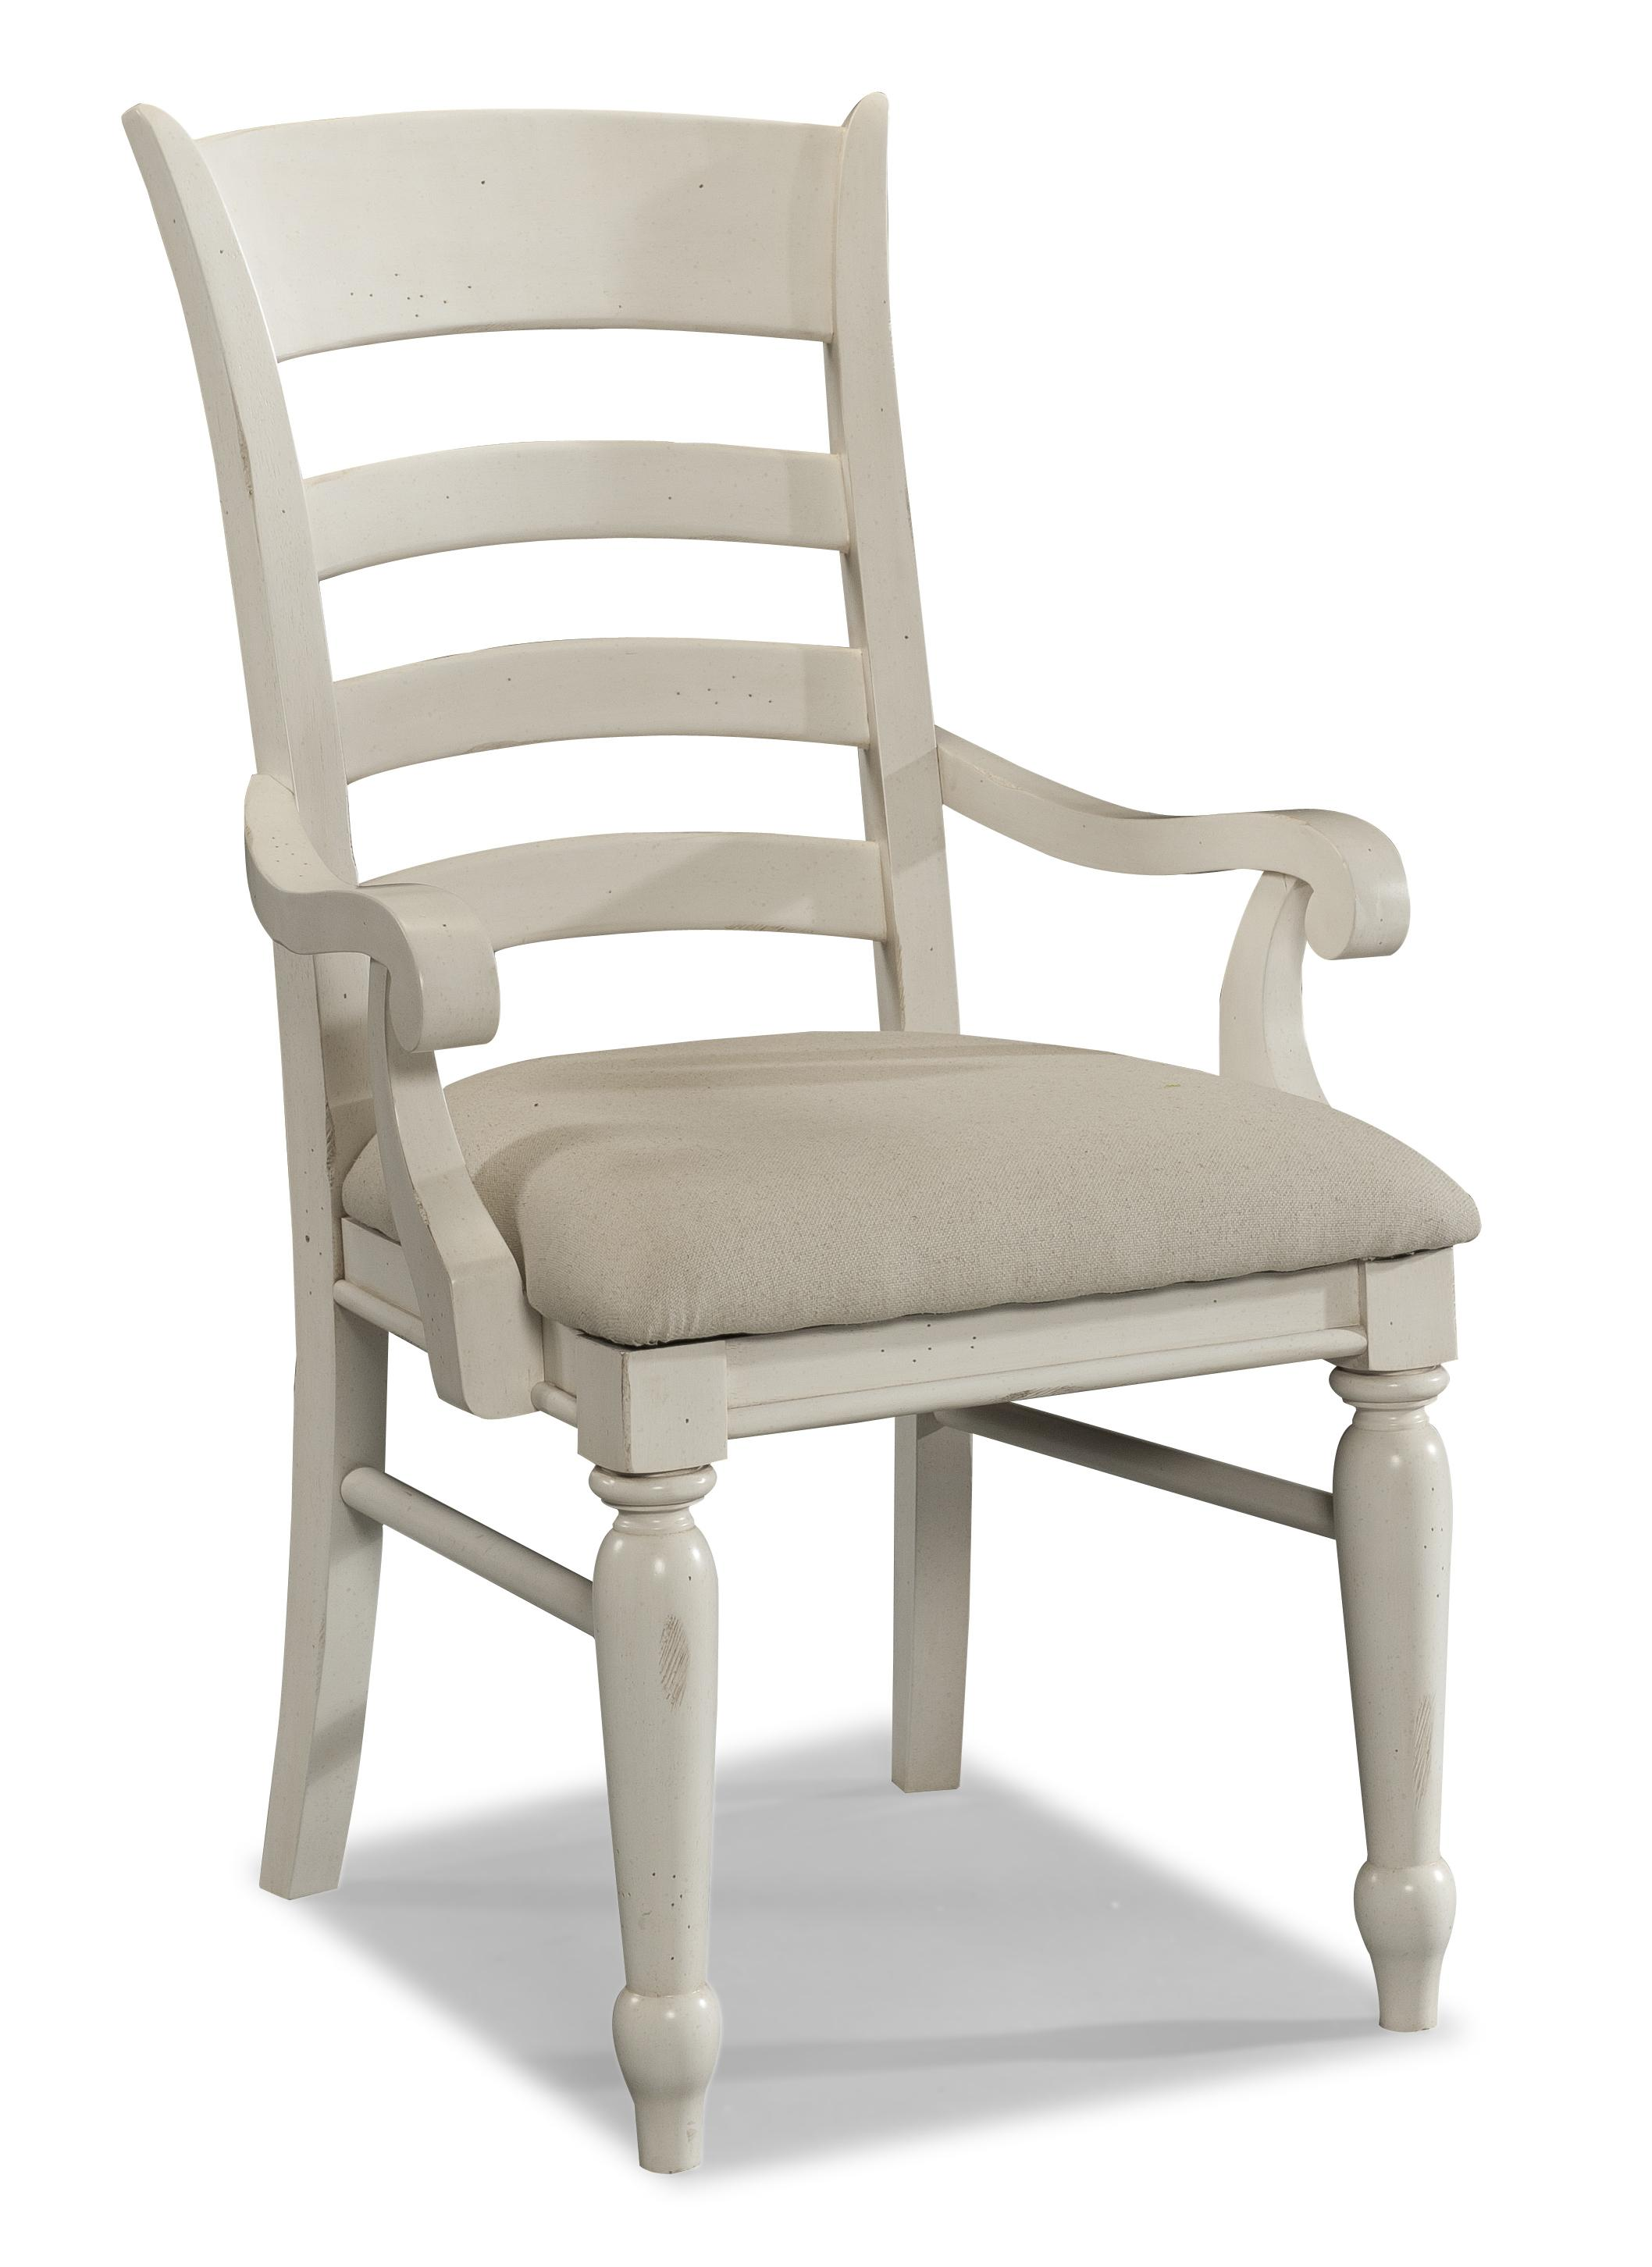 Easton Collection Sea Breeze White Ladder Back Arm Chair - Item Number: 424-906 DRC